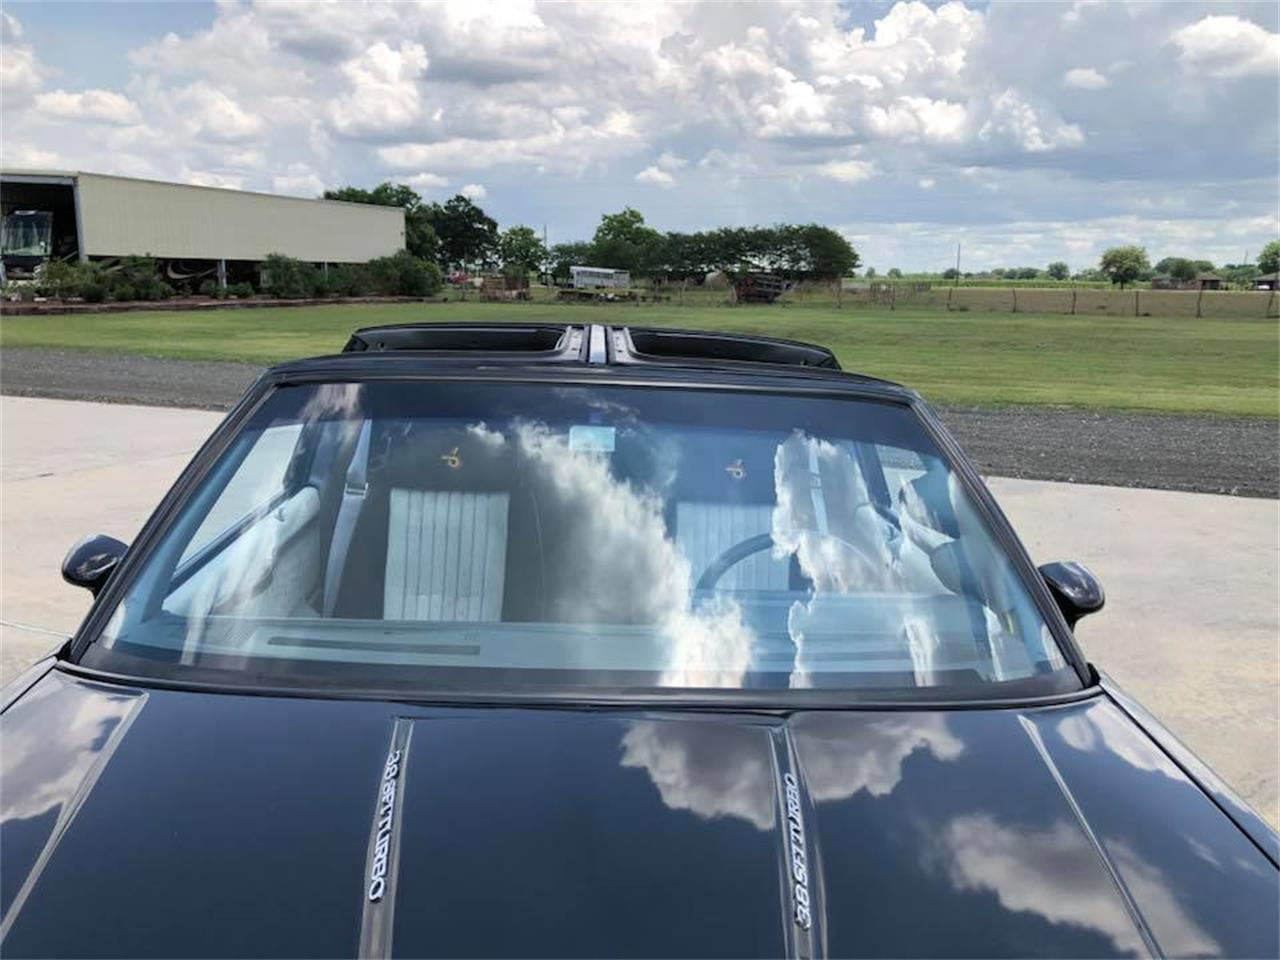 Large Picture of '86 Buick Grand National located in BEASLEY Texas - $35,000.00 - Q8HL